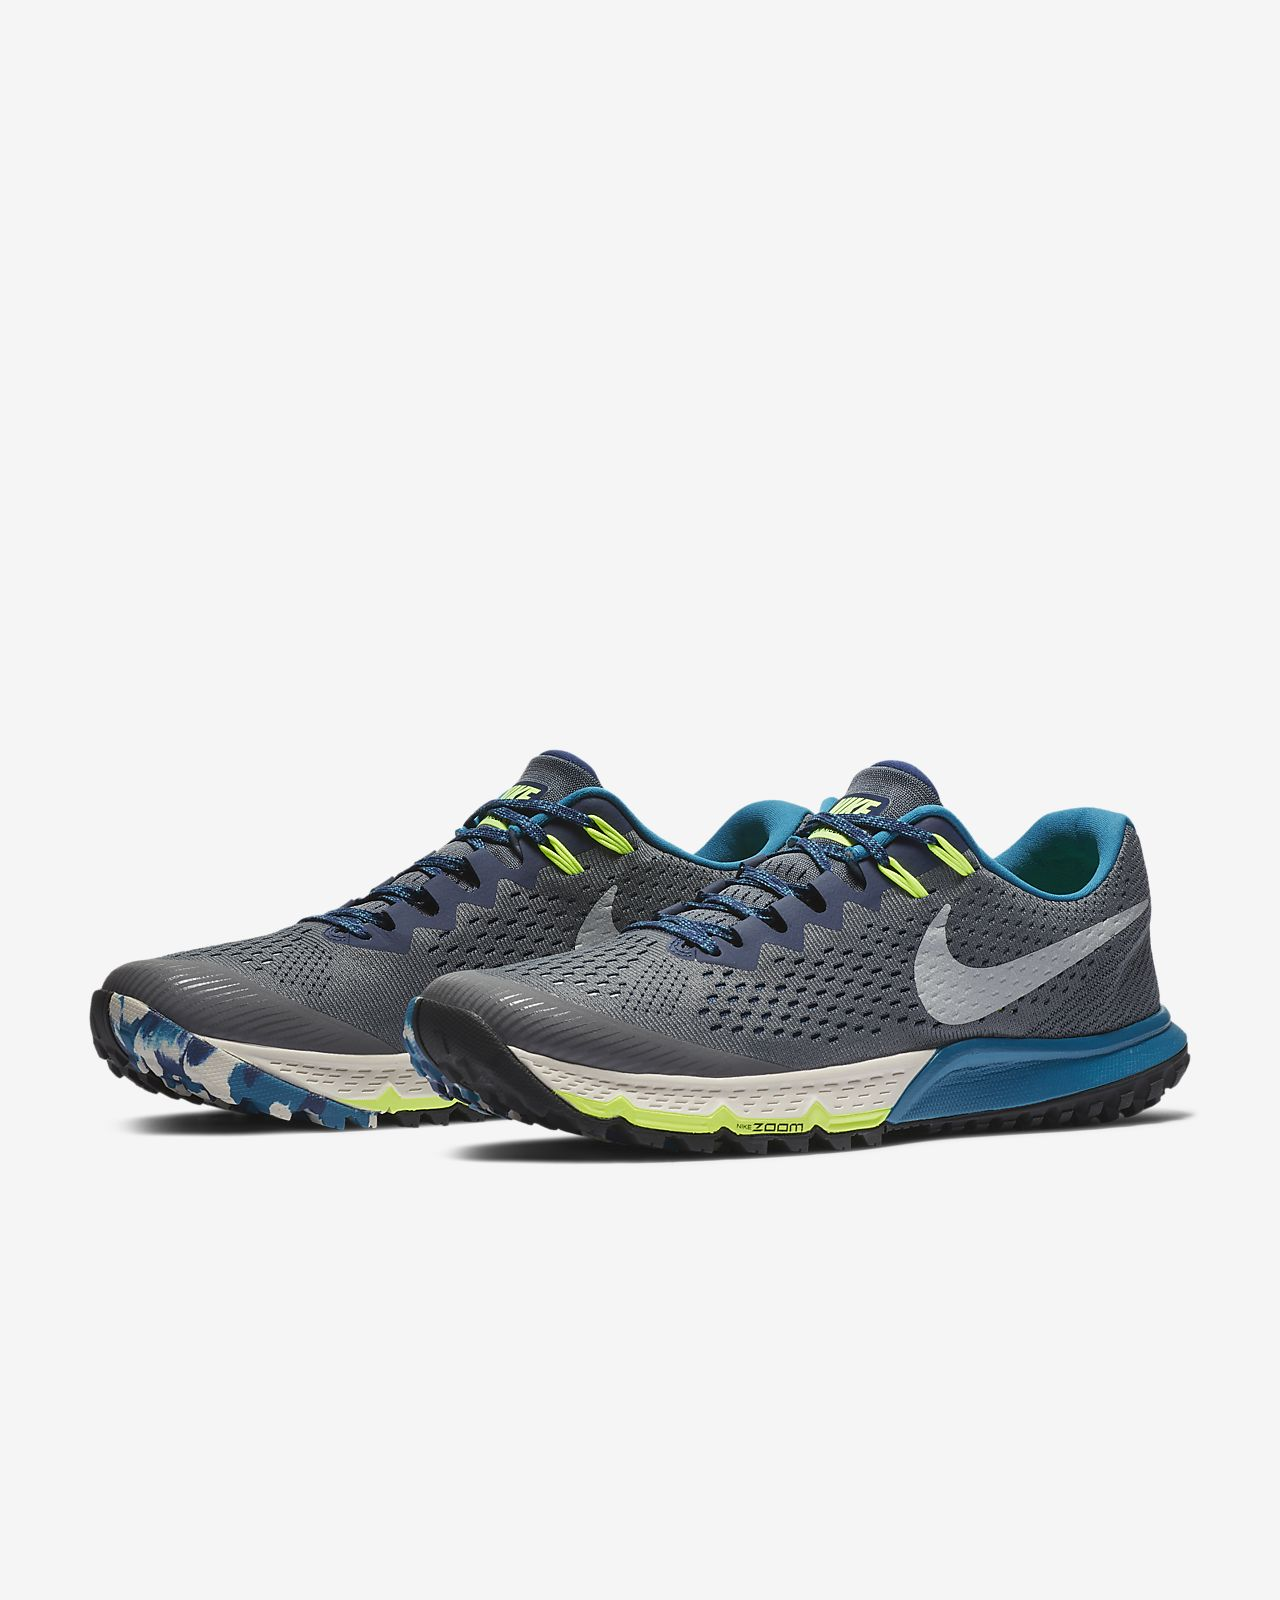 reputable site 08bd3 9e931 ... Nike Air Zoom Terra Kiger 4 Men s Running Shoe